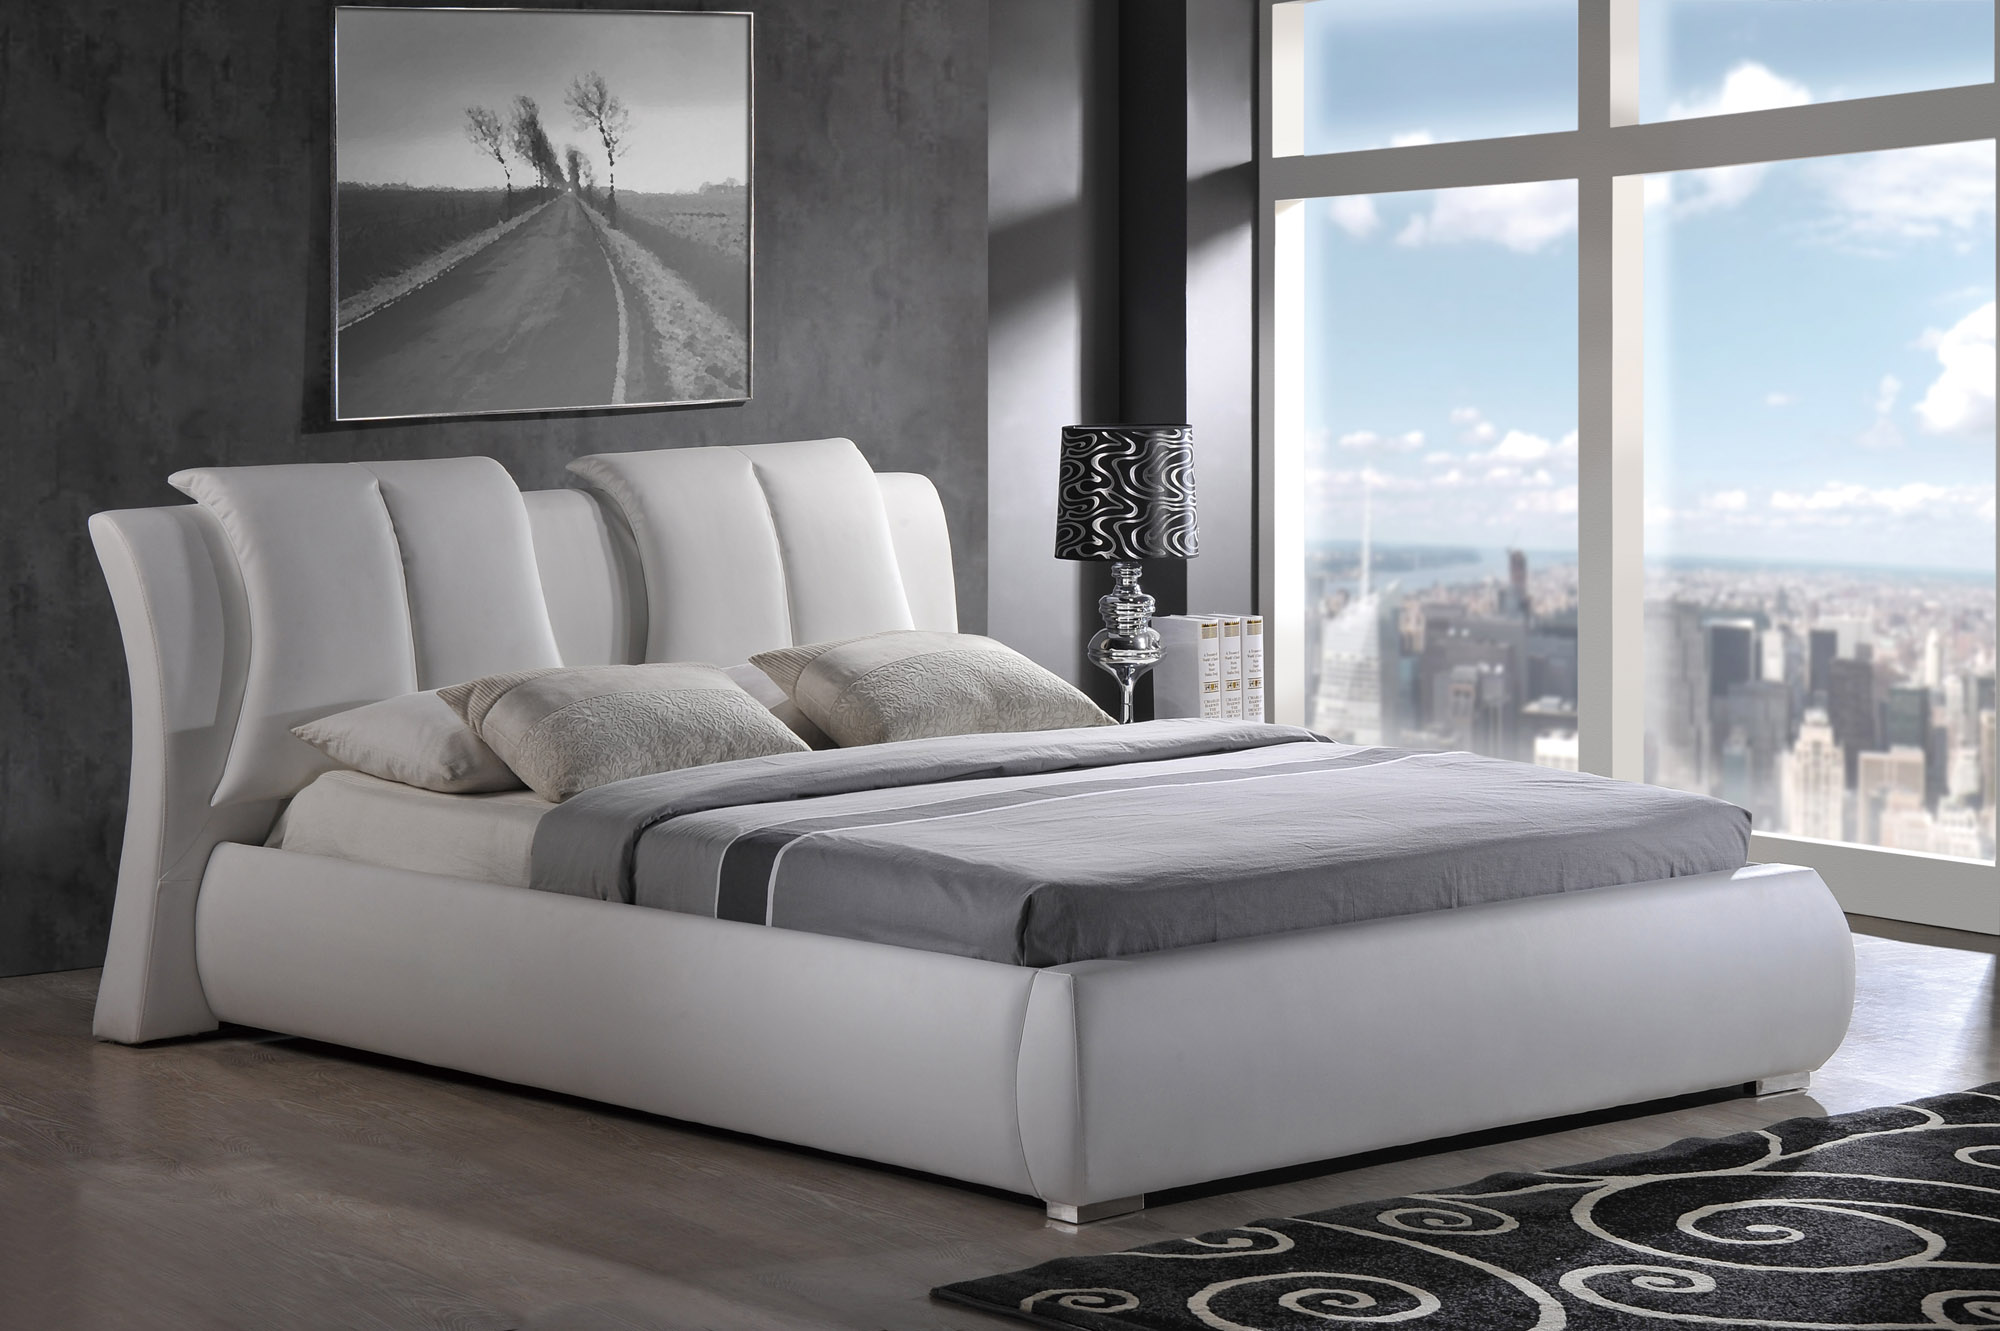 high class leather luxury platform bed new york new york